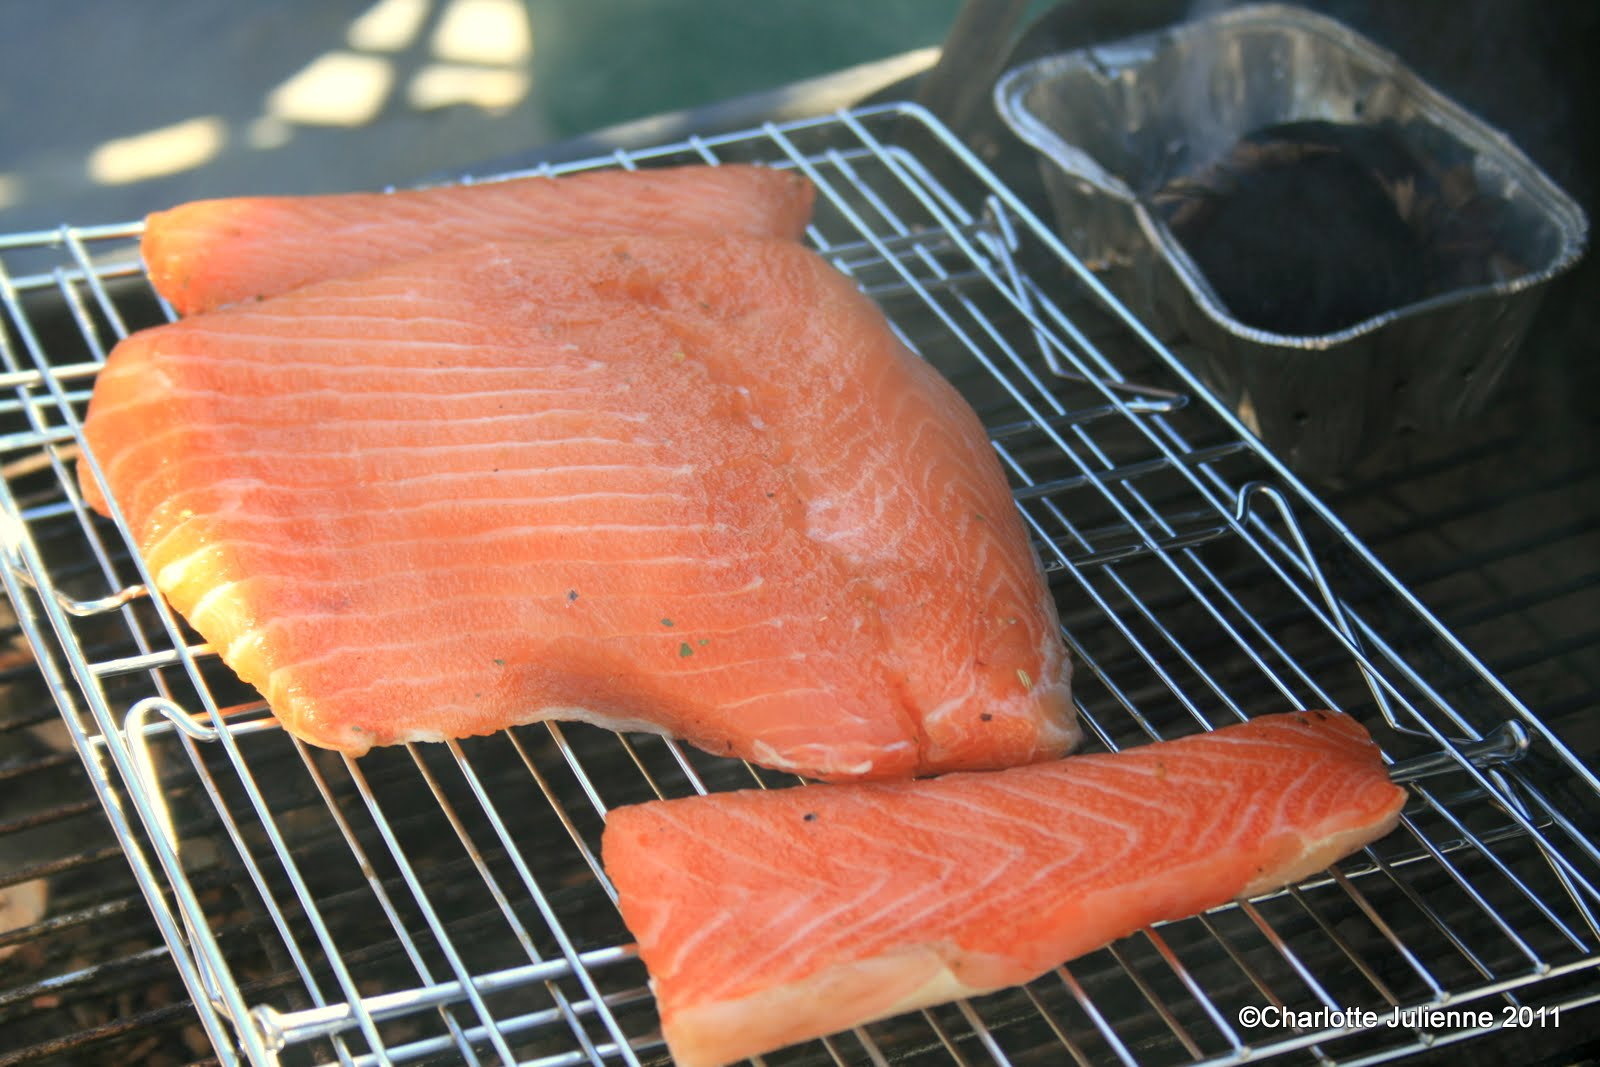 Best Wood Chips Smoking Salmon : Hours we use an old bbq and used a tin with charcoal wood chips